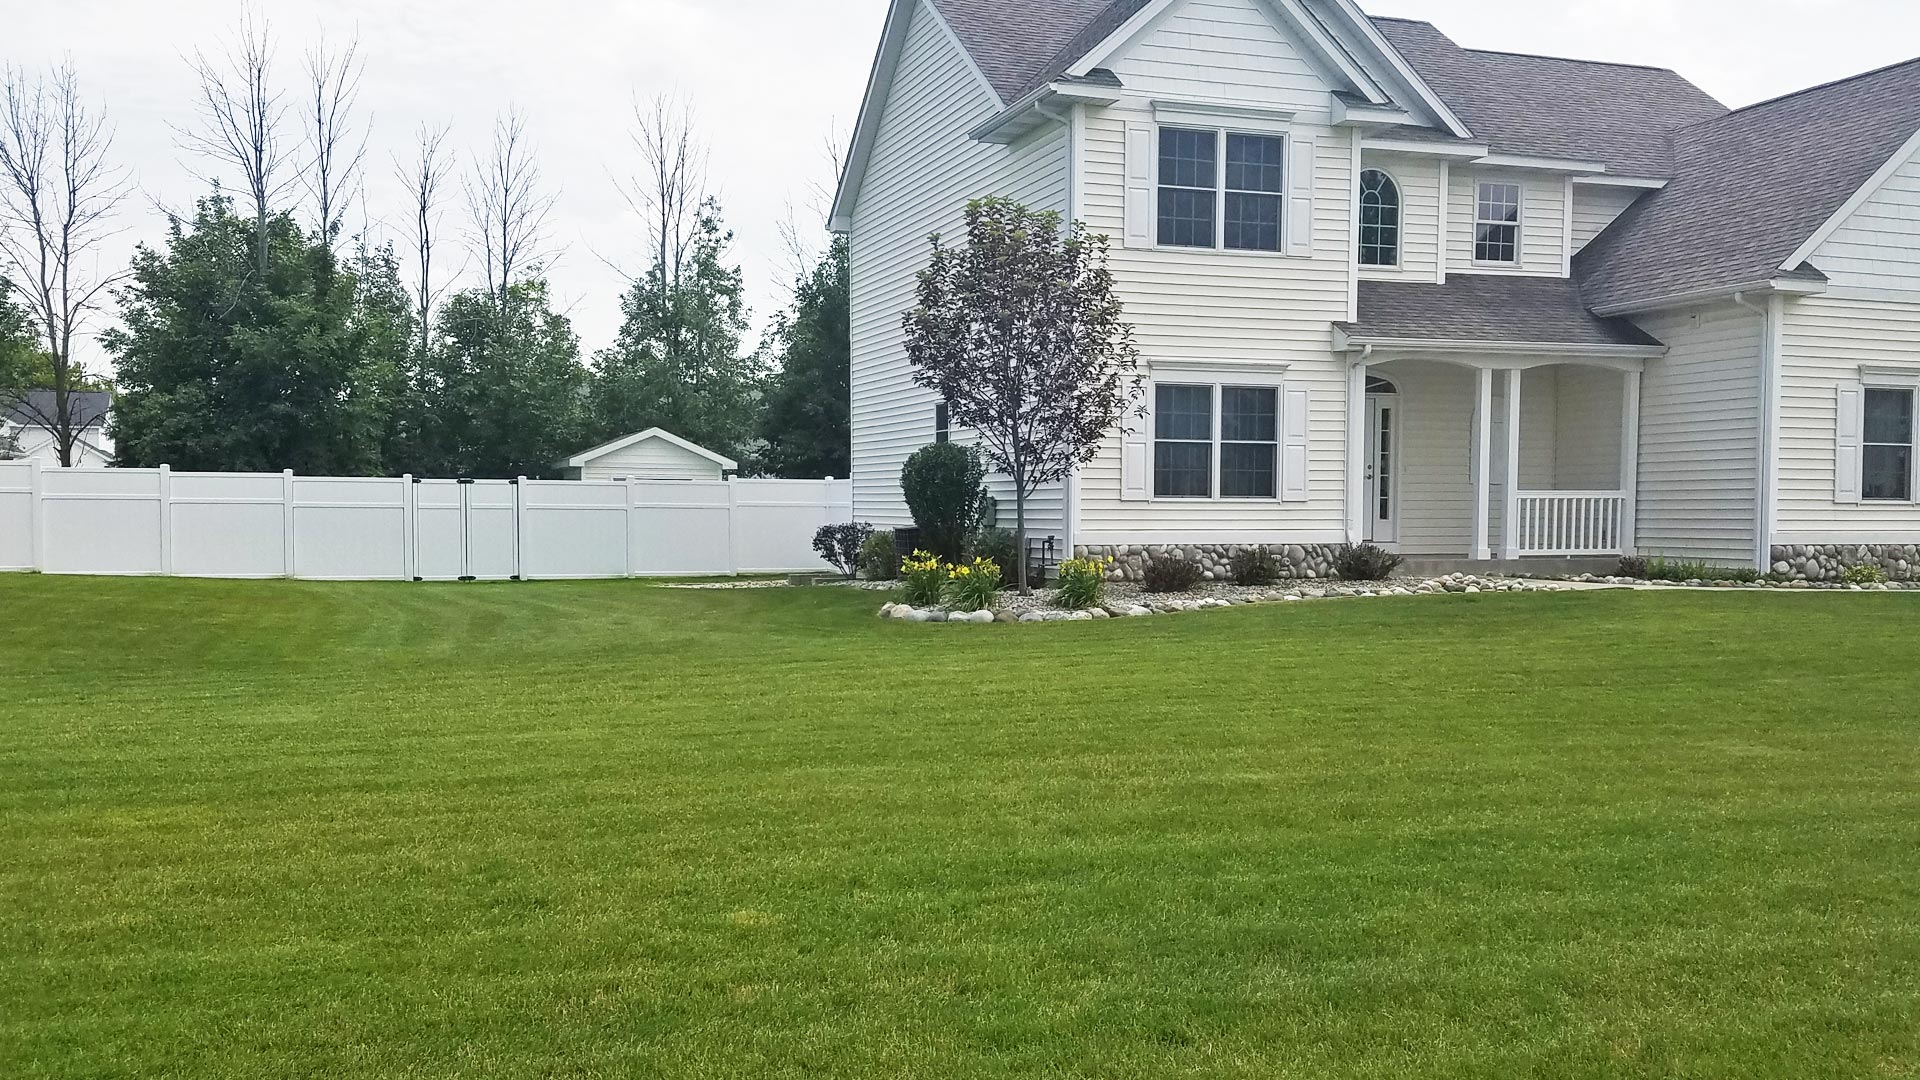 Residential property in Saginaw, MI that was recently mowed and maintained by our team.